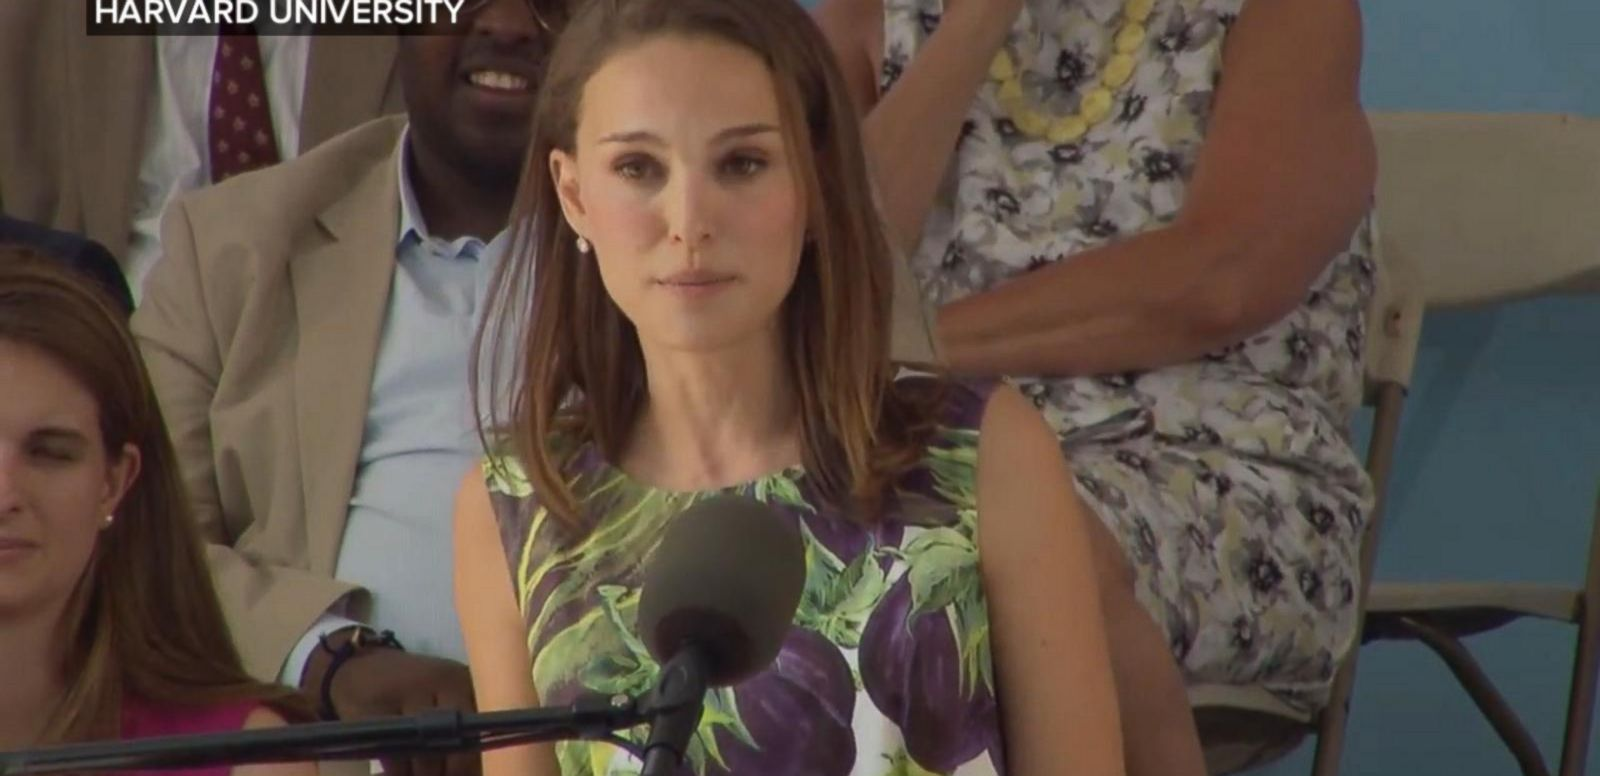 VIDEO: Natalie Portman discussed her past feelings of insecurity during speech at Harvard's Class Day.